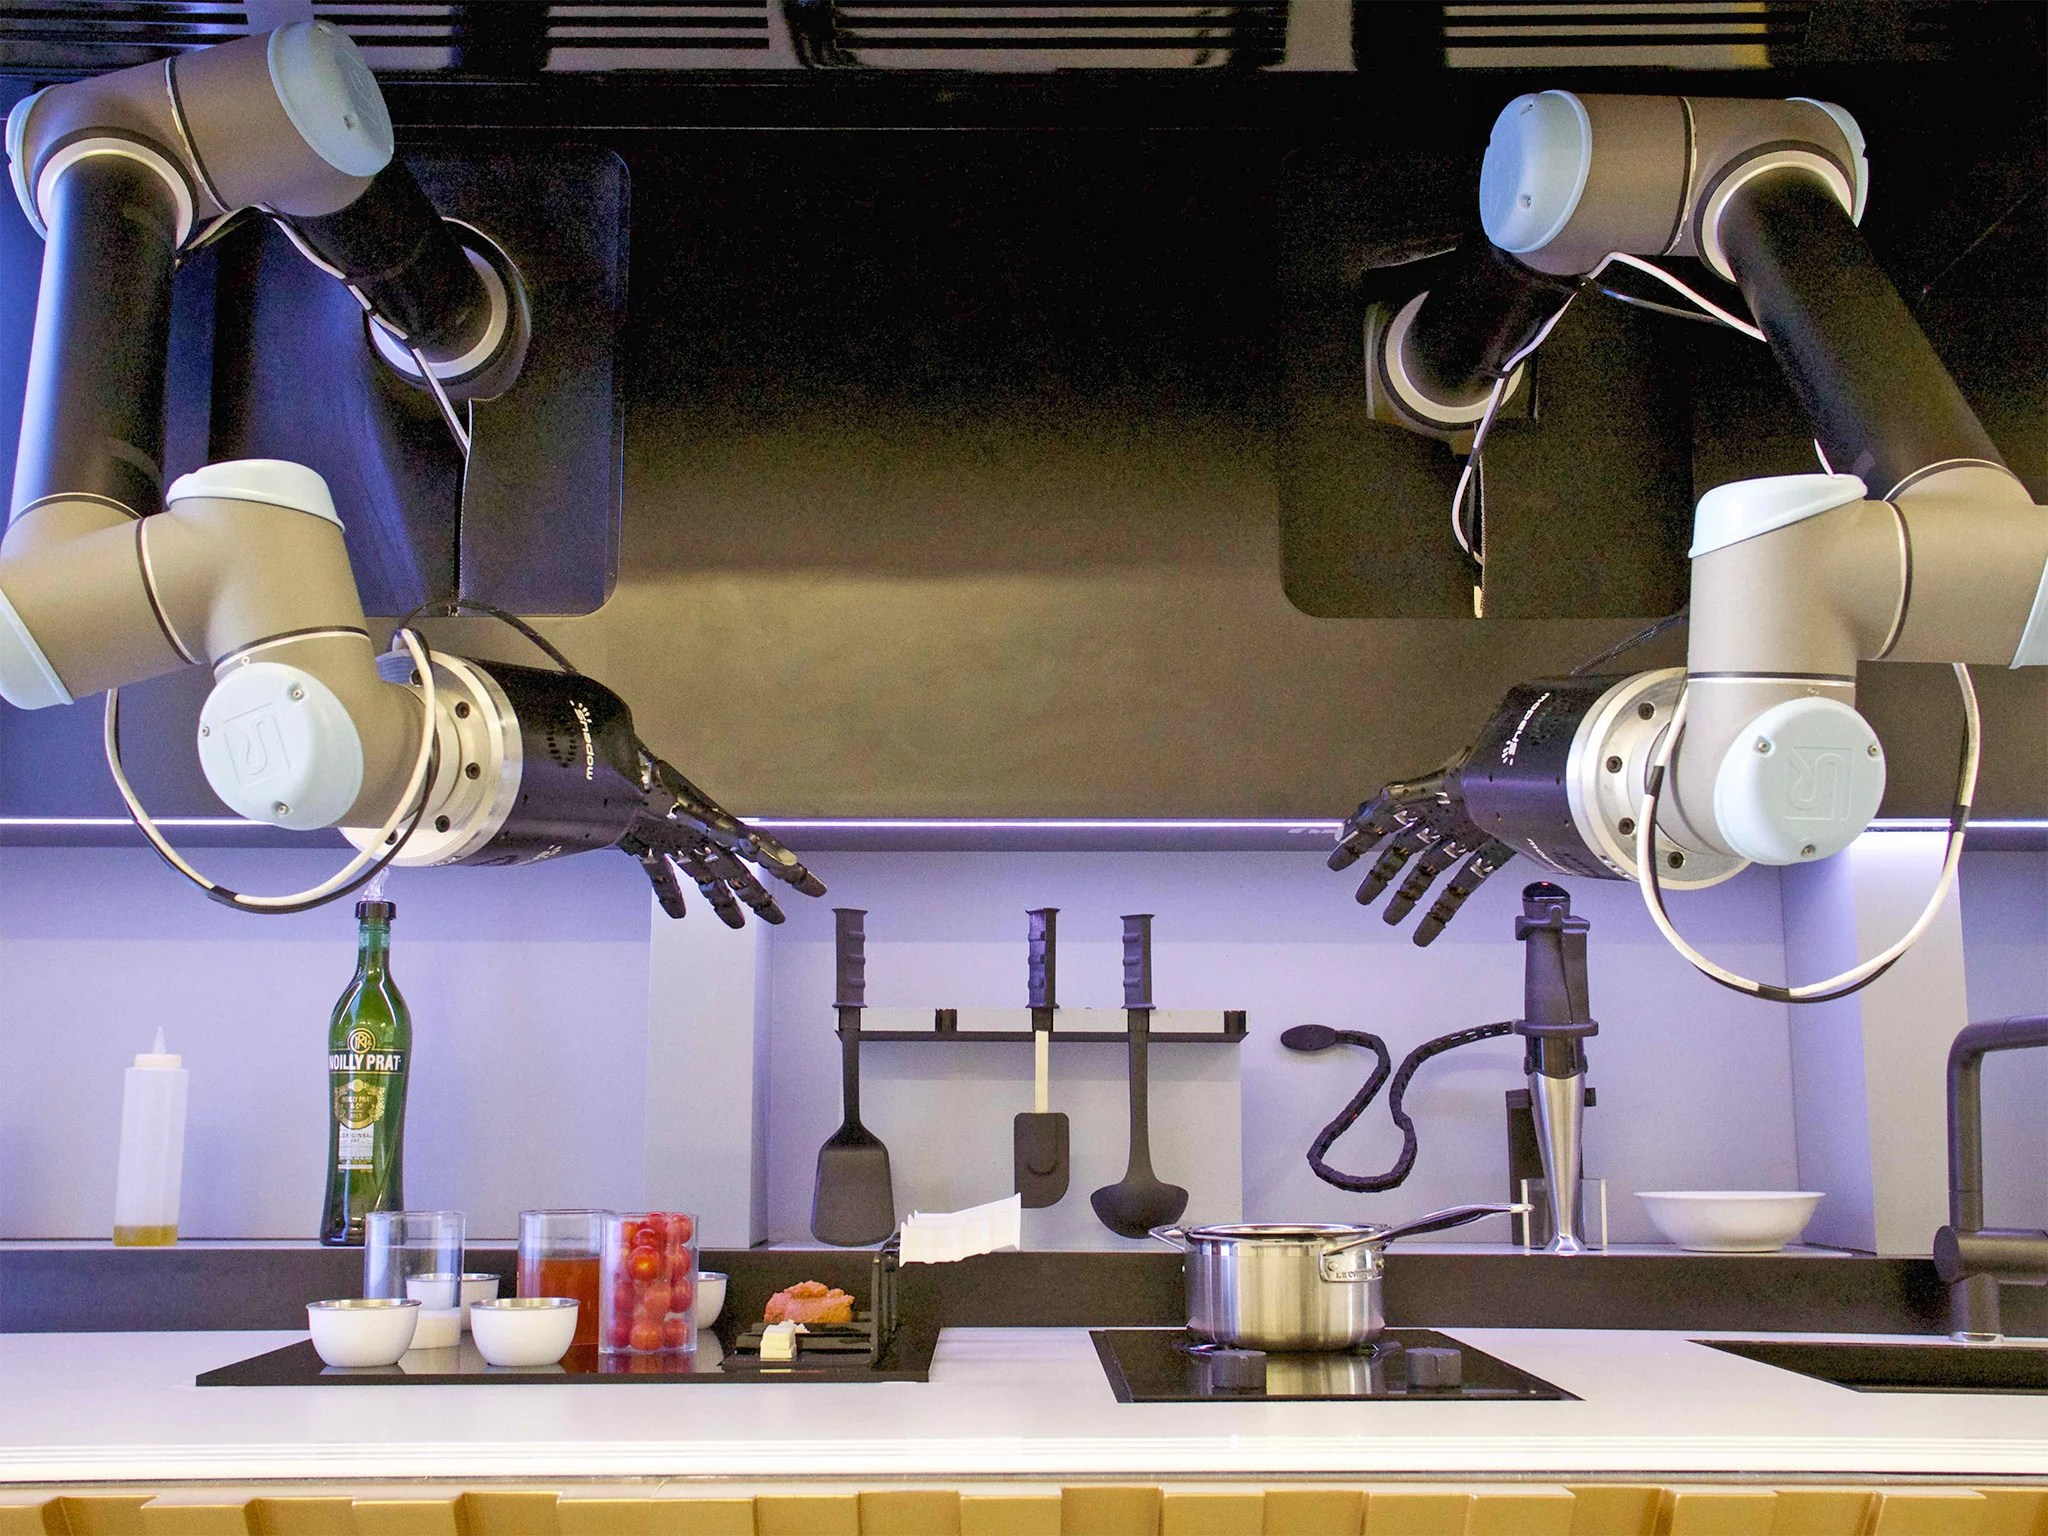 kitchens to go easy kitchen backsplash hi tech from robot chefs recipe shopping apps computerised cooking is coming